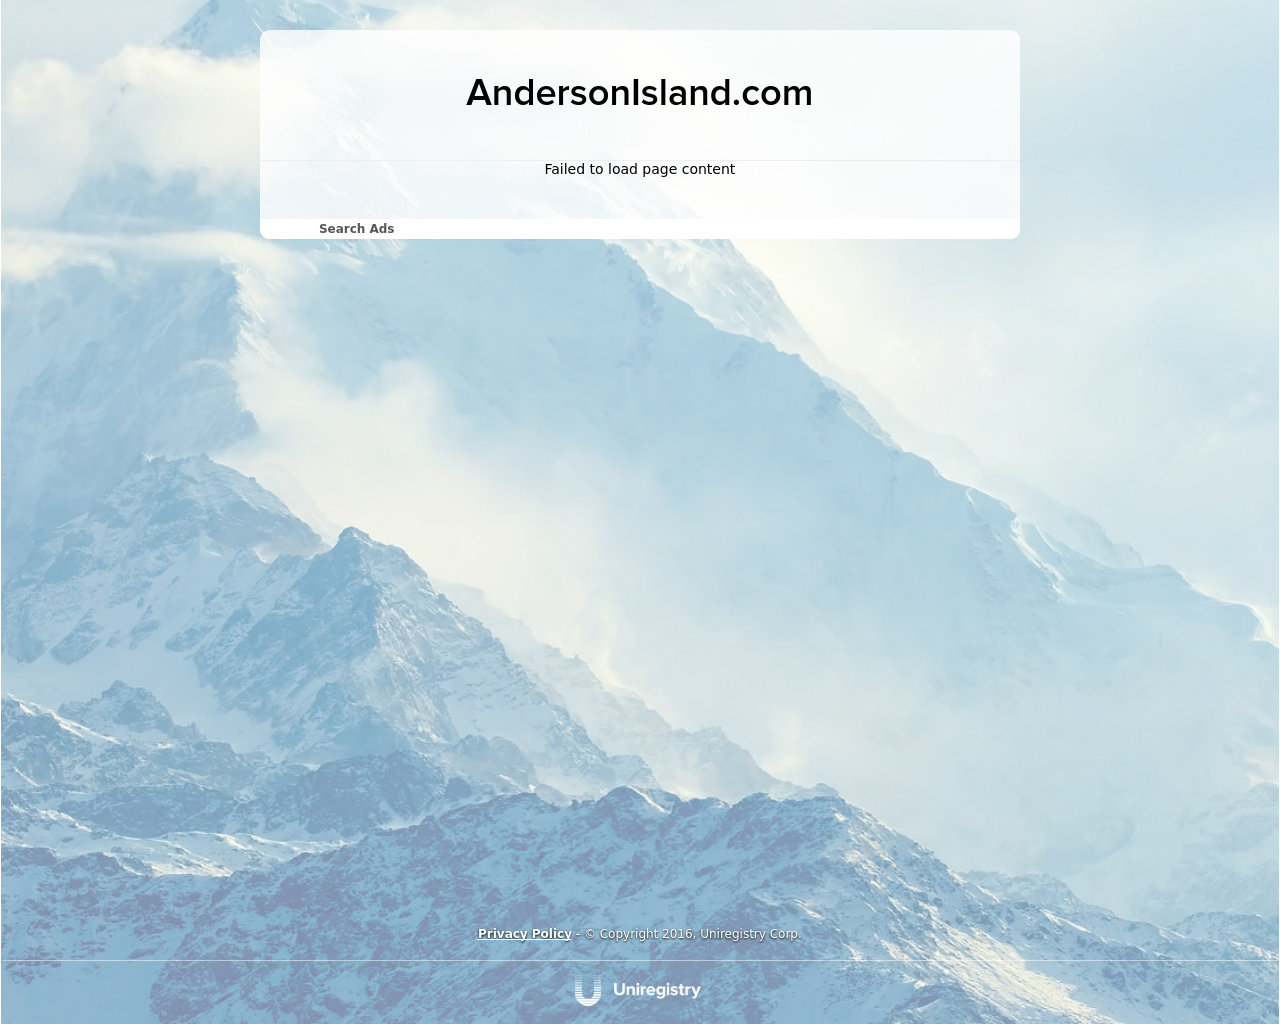 AndersonIsland.com-Advertising-Reviews-Pricing